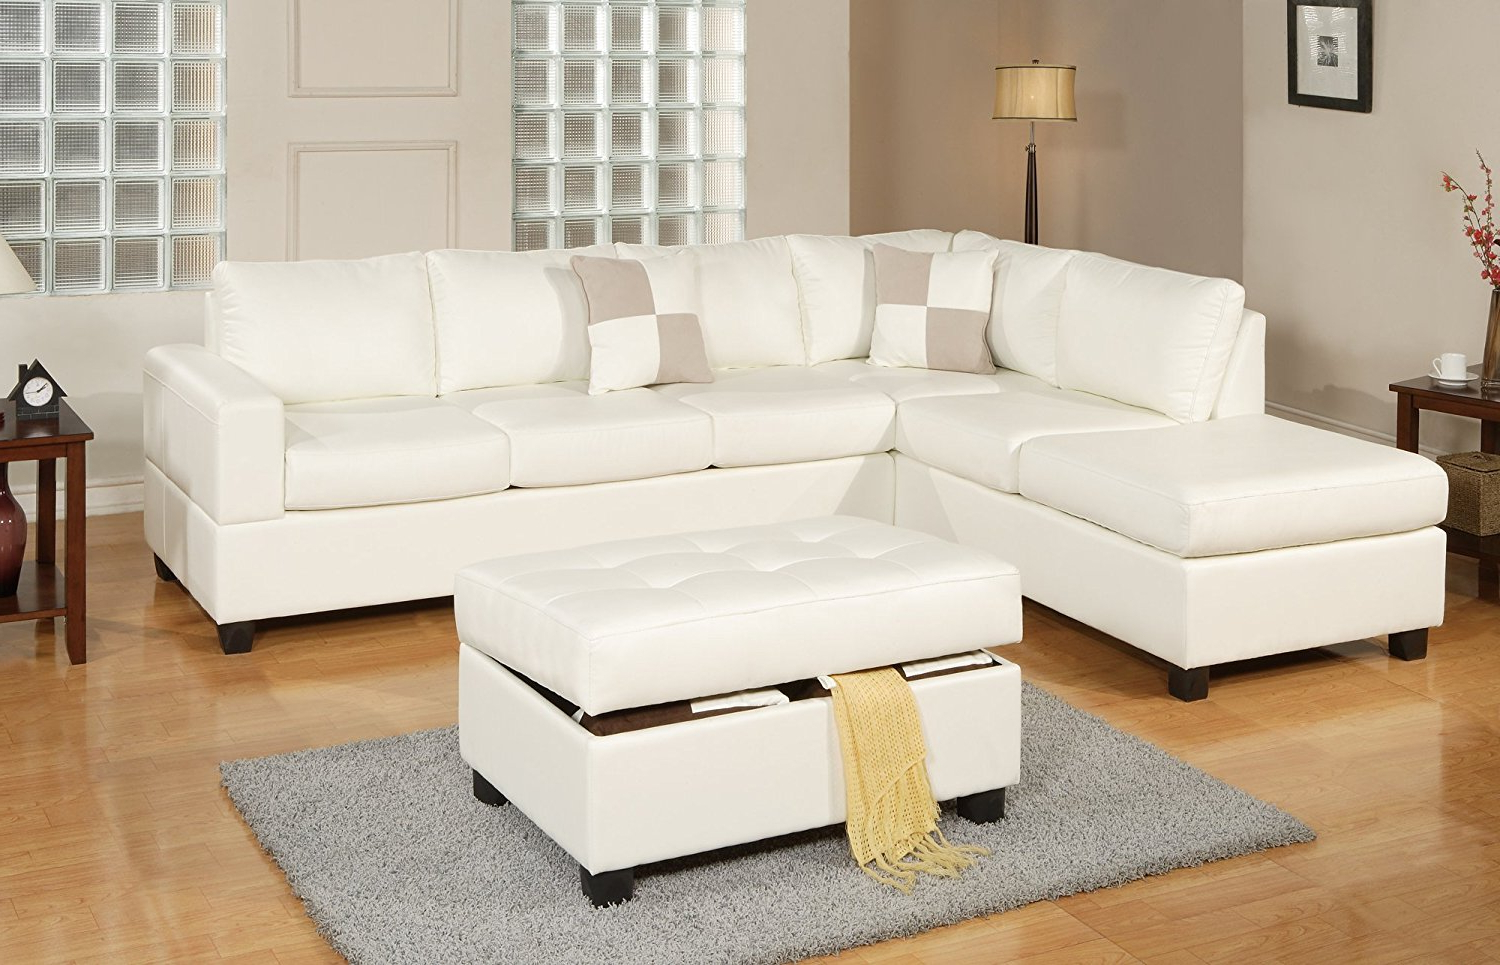 Current Burton Leather 3 Piece Sectionals With Ottoman Regarding Furniture: Sectional Couch Costco Great For Living Room (View 18 of 20)